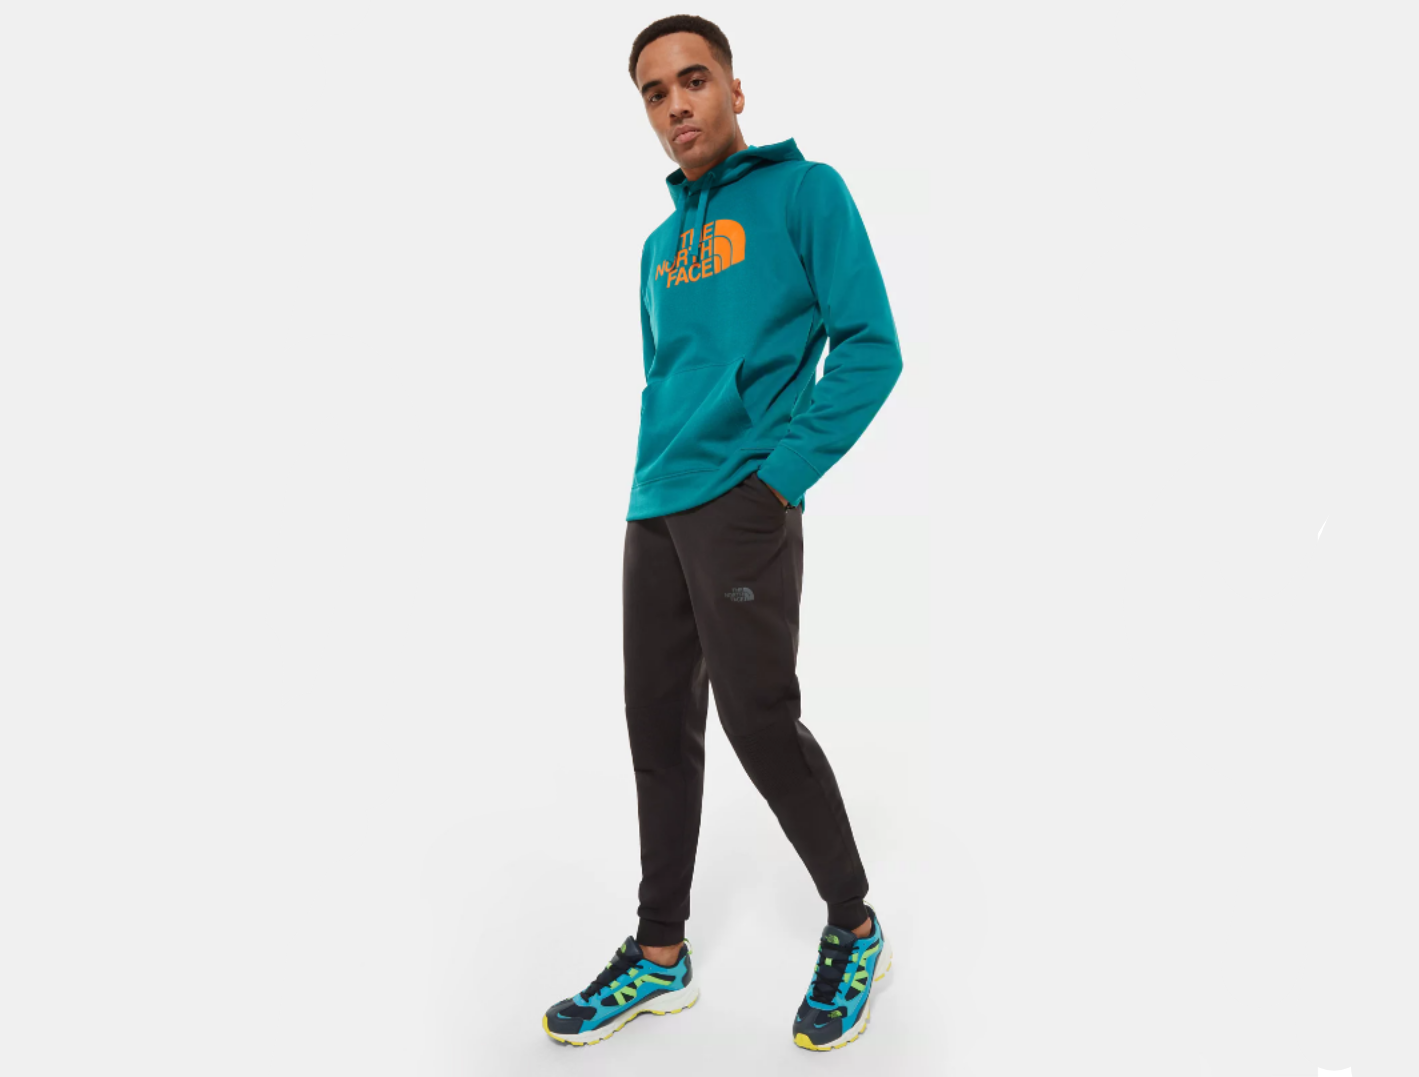 Home training outfits from The North Face